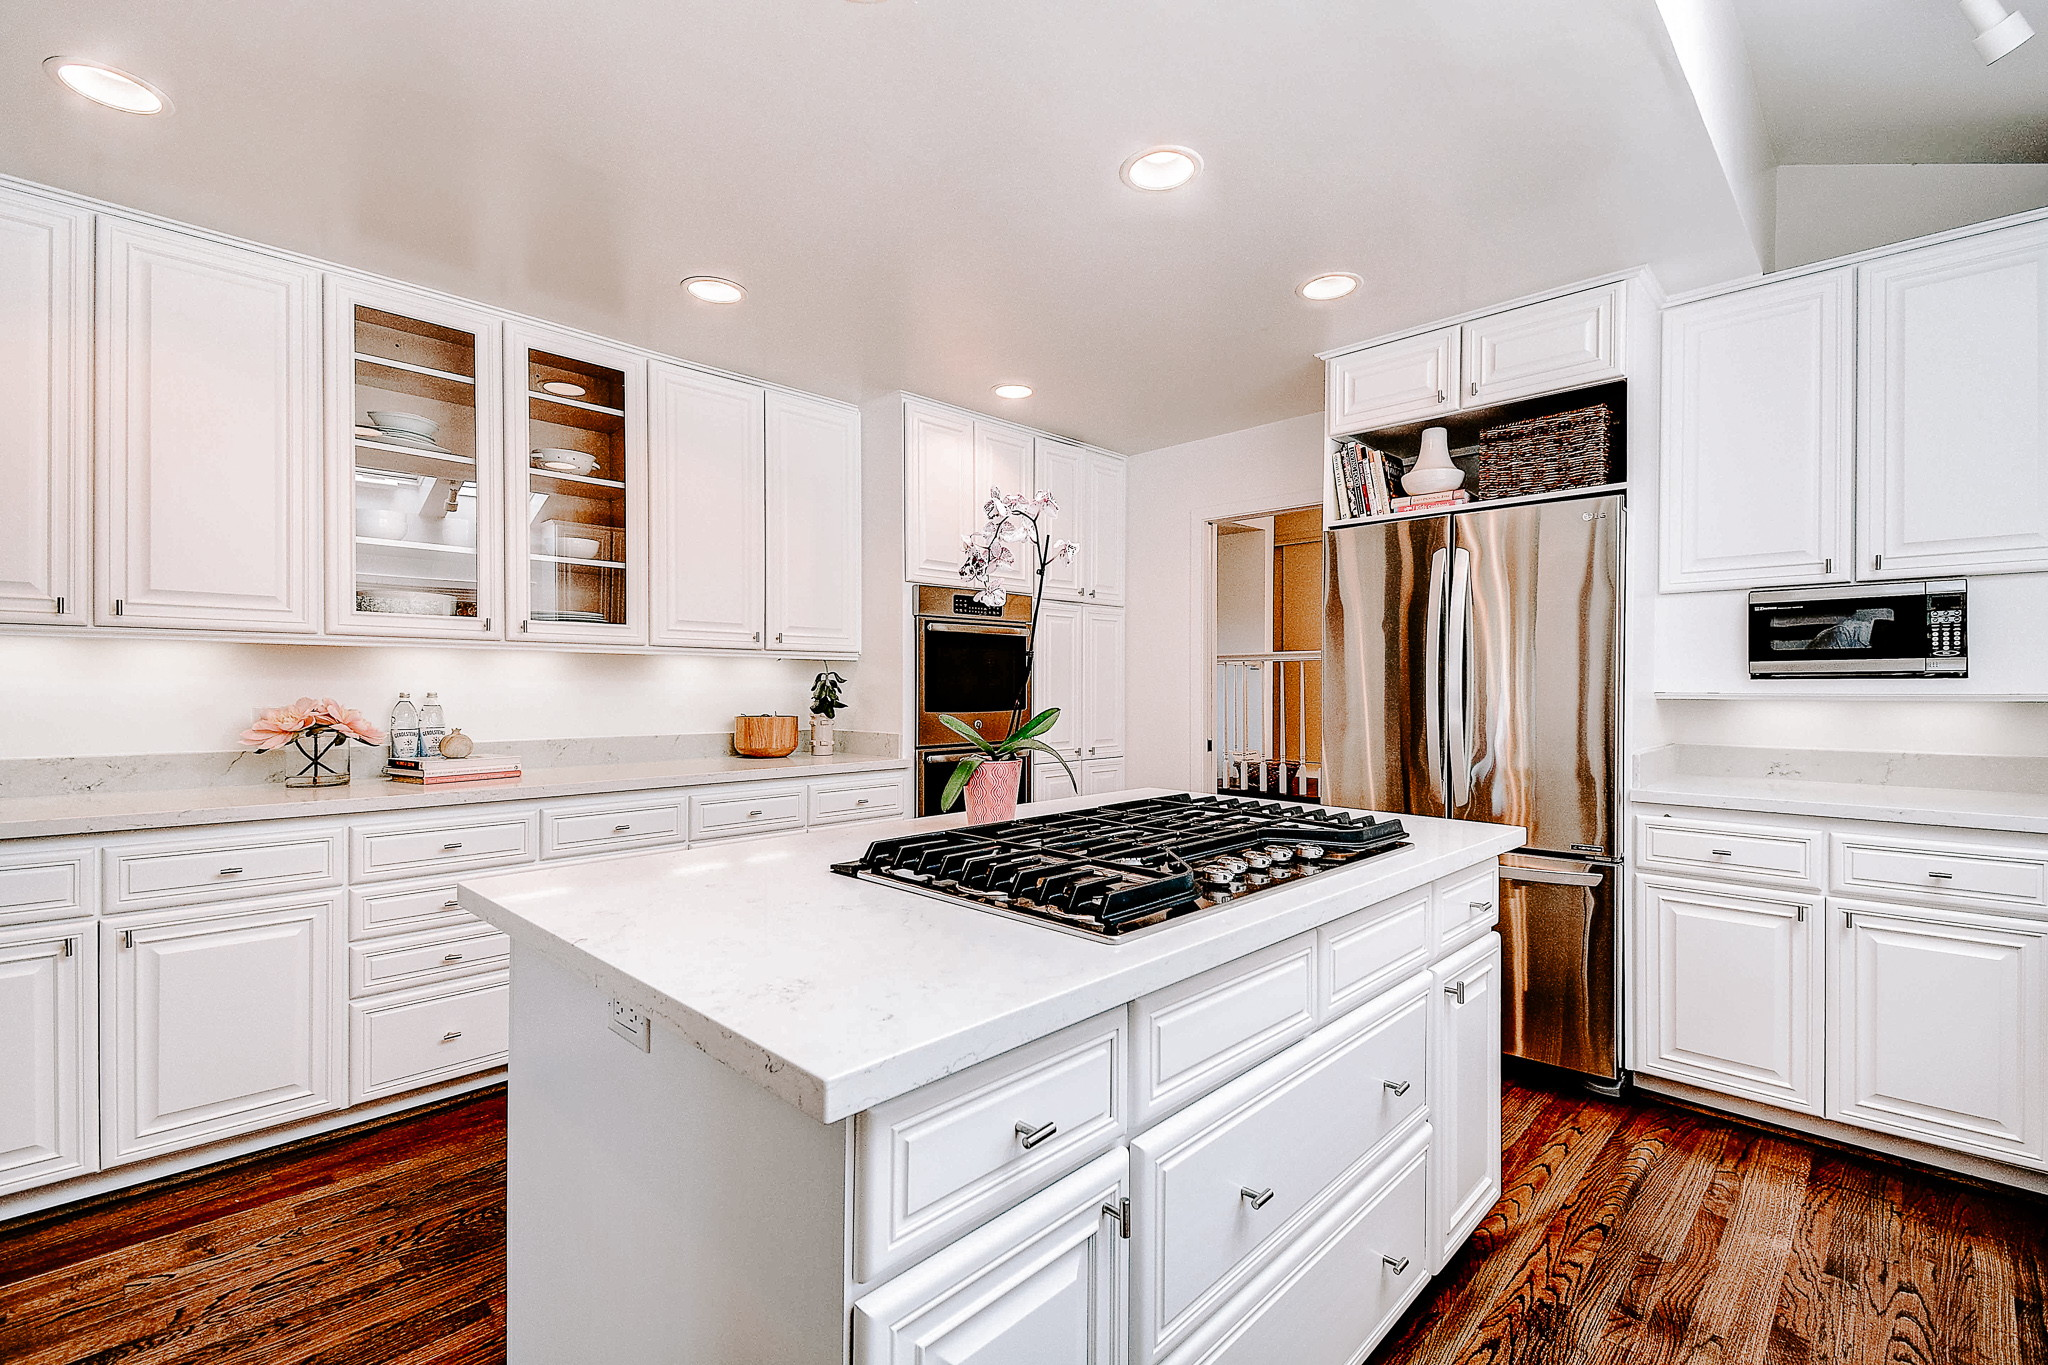 210 Bretano Way-21Greenbrae Real Estate - Listed by Team Own Marin County .jpg